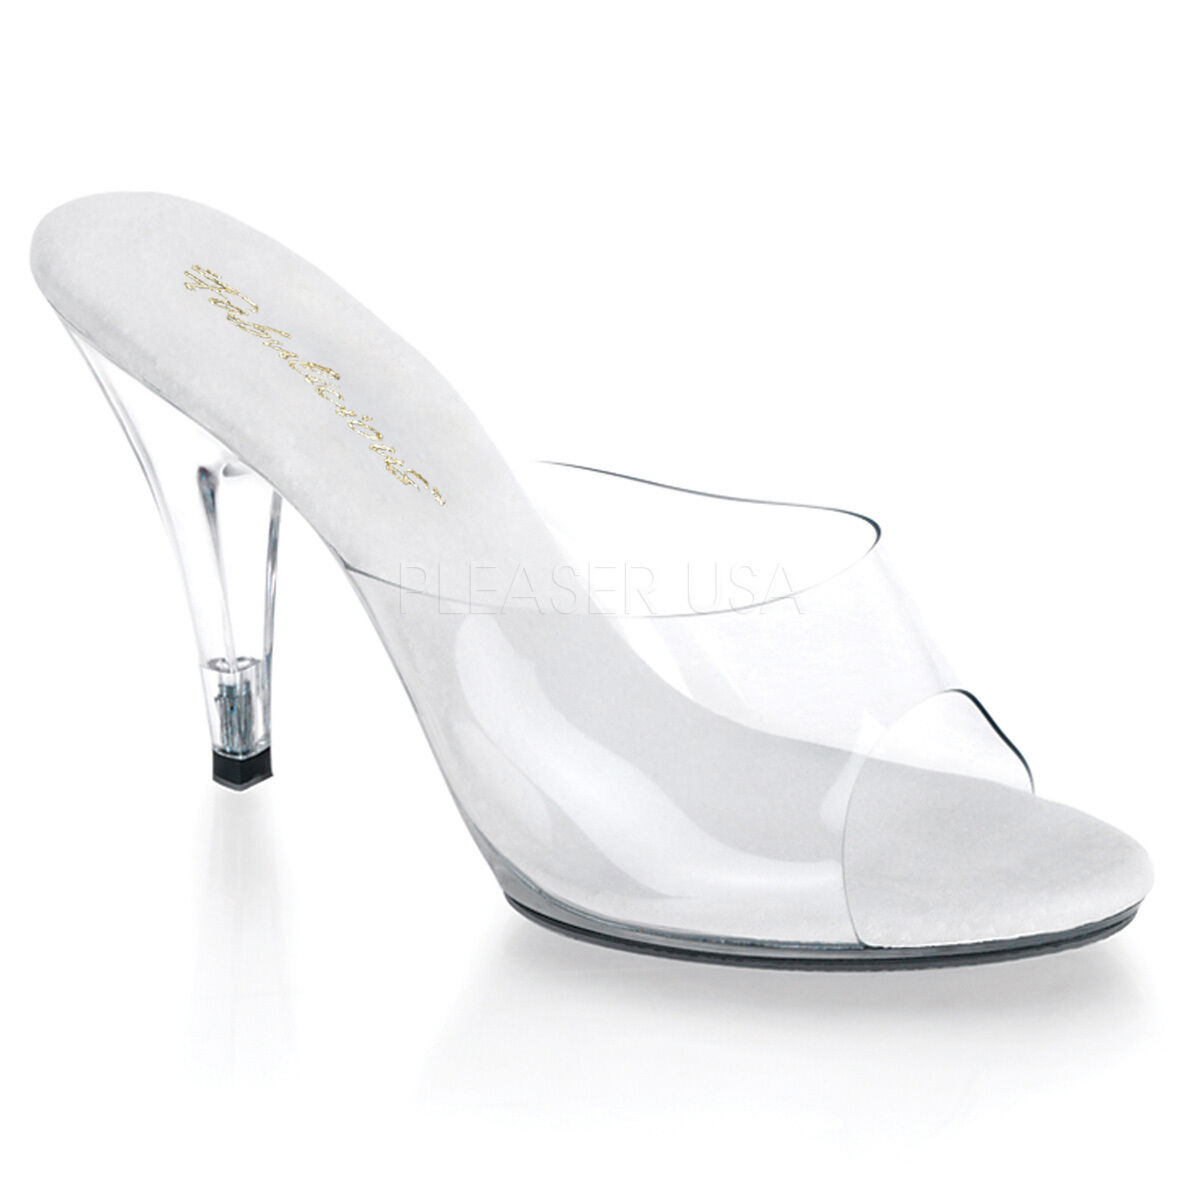 Fabulicious Caress-401 Clear Transparent Slippers Stiletto Heel Sandals